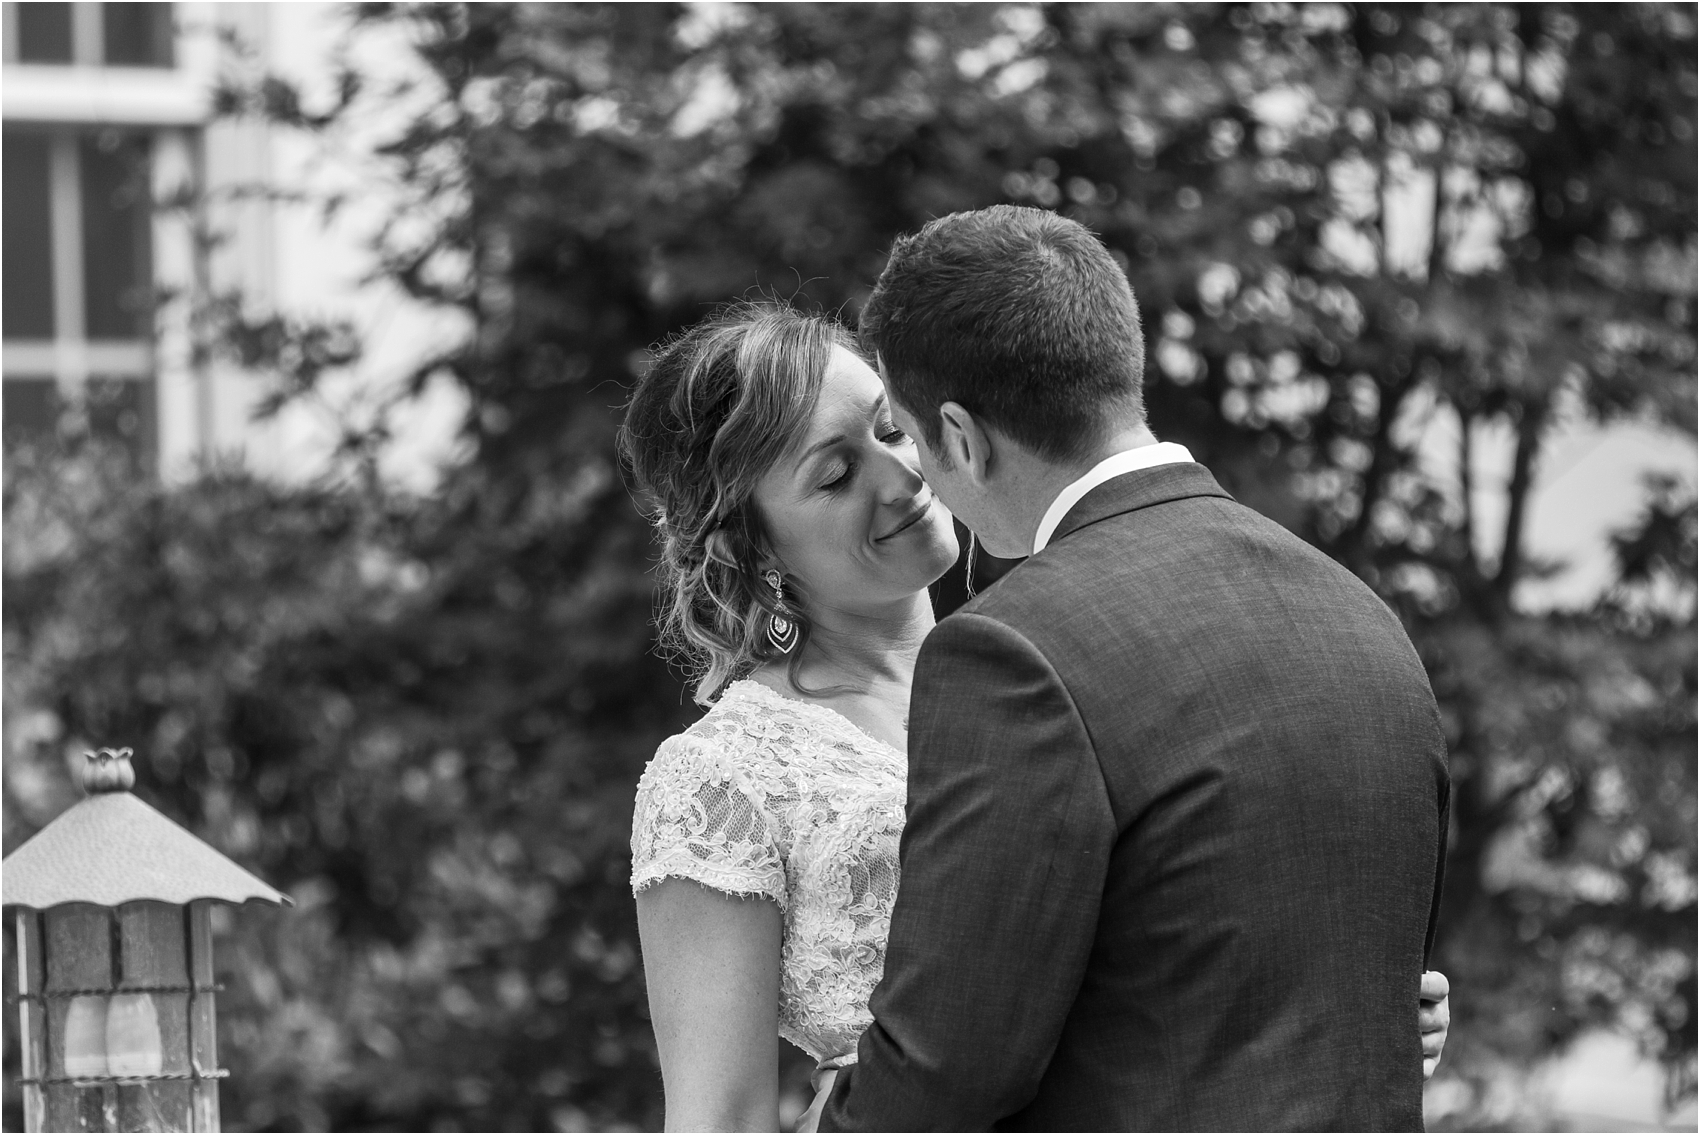 romantic-intimate-backyard-wedding-photos-at-private-estate-in-ann-arbor-mi-by-courtney-carolyn-photography_0066.jpg